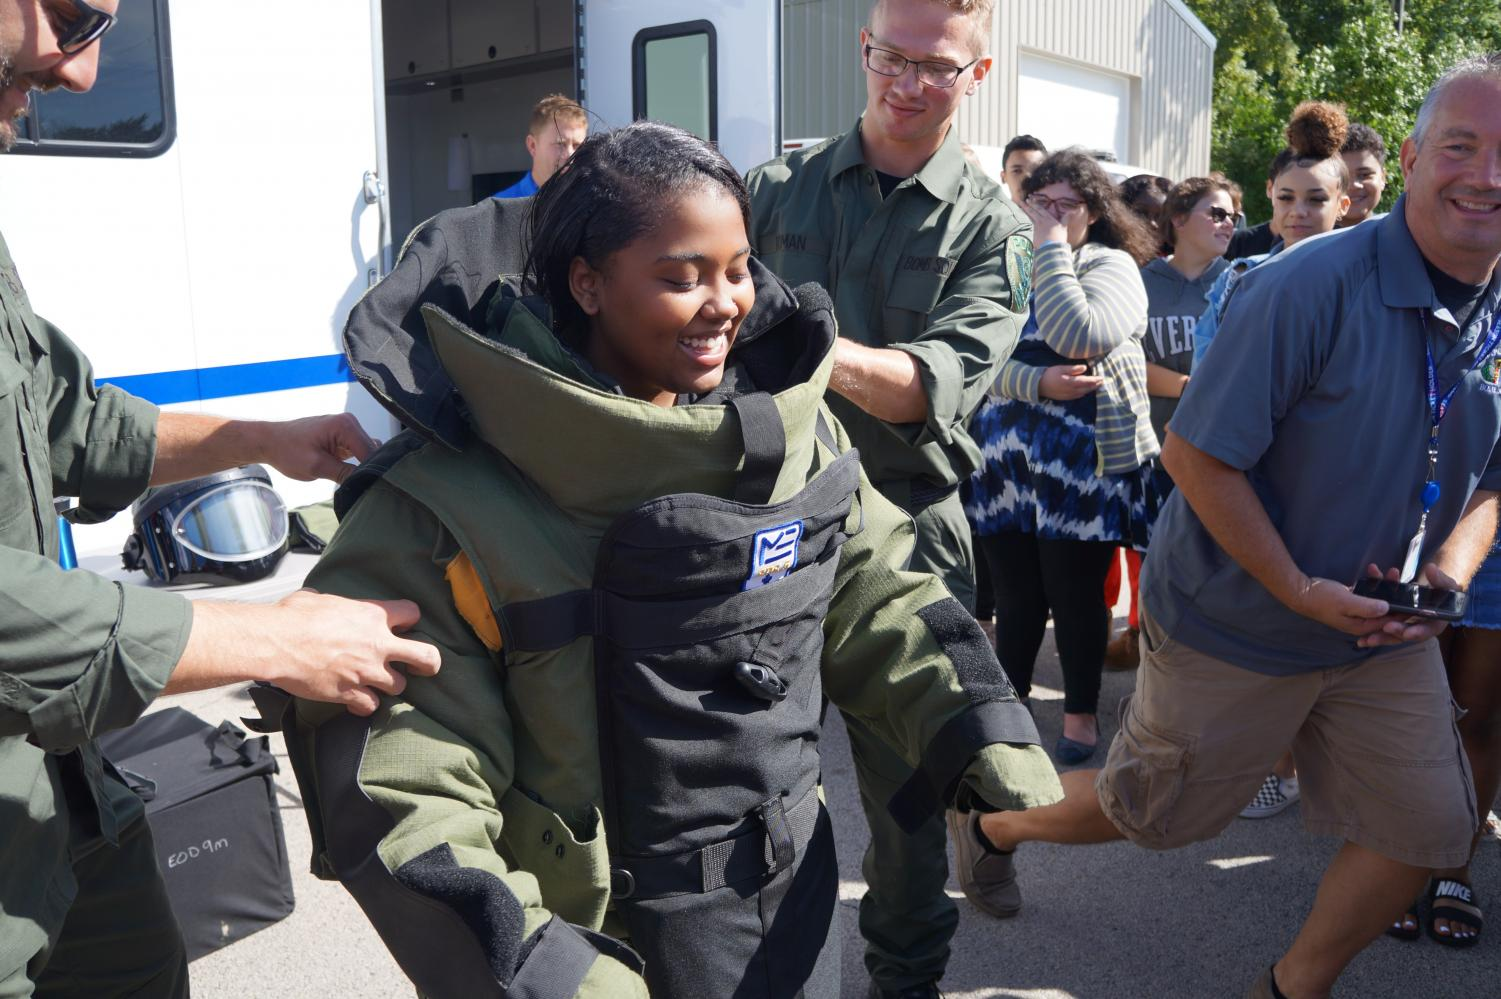 You da Bomb! Nevaeh Prunty, senior, dons an explosion-protective outfit worn by bomb squad police during Mr. Barabas' Criminology class on September 12.